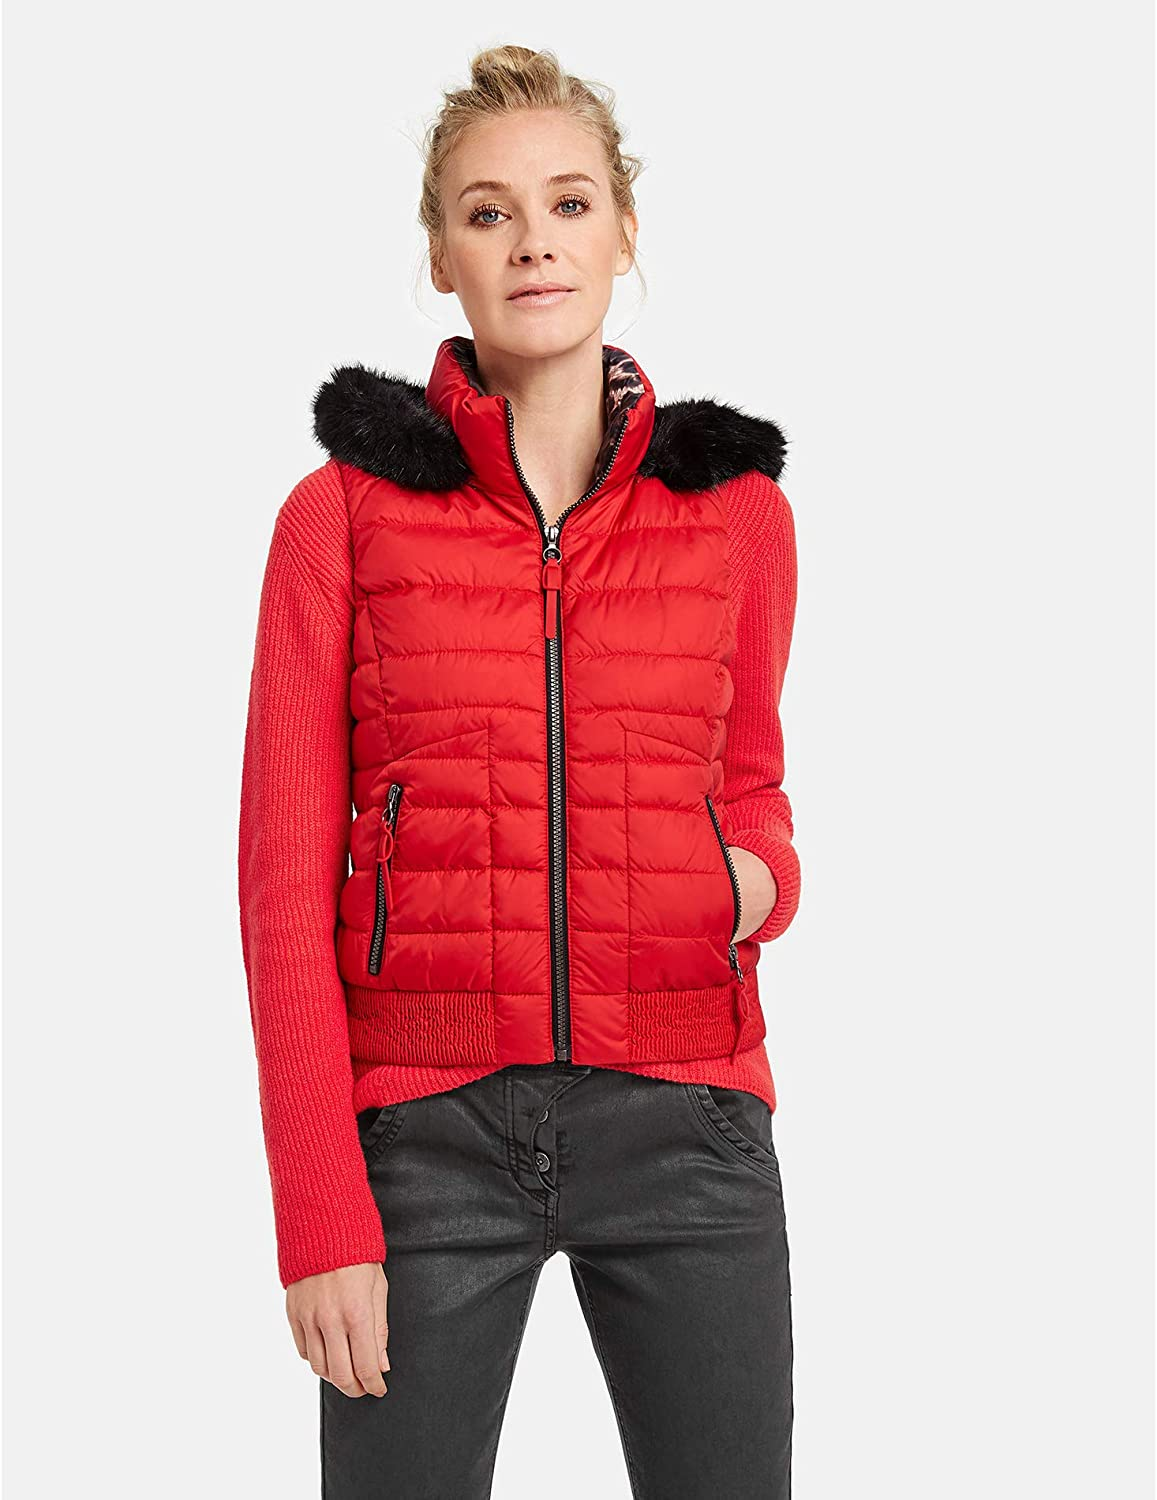 Taifun Damen Outdoor Weste